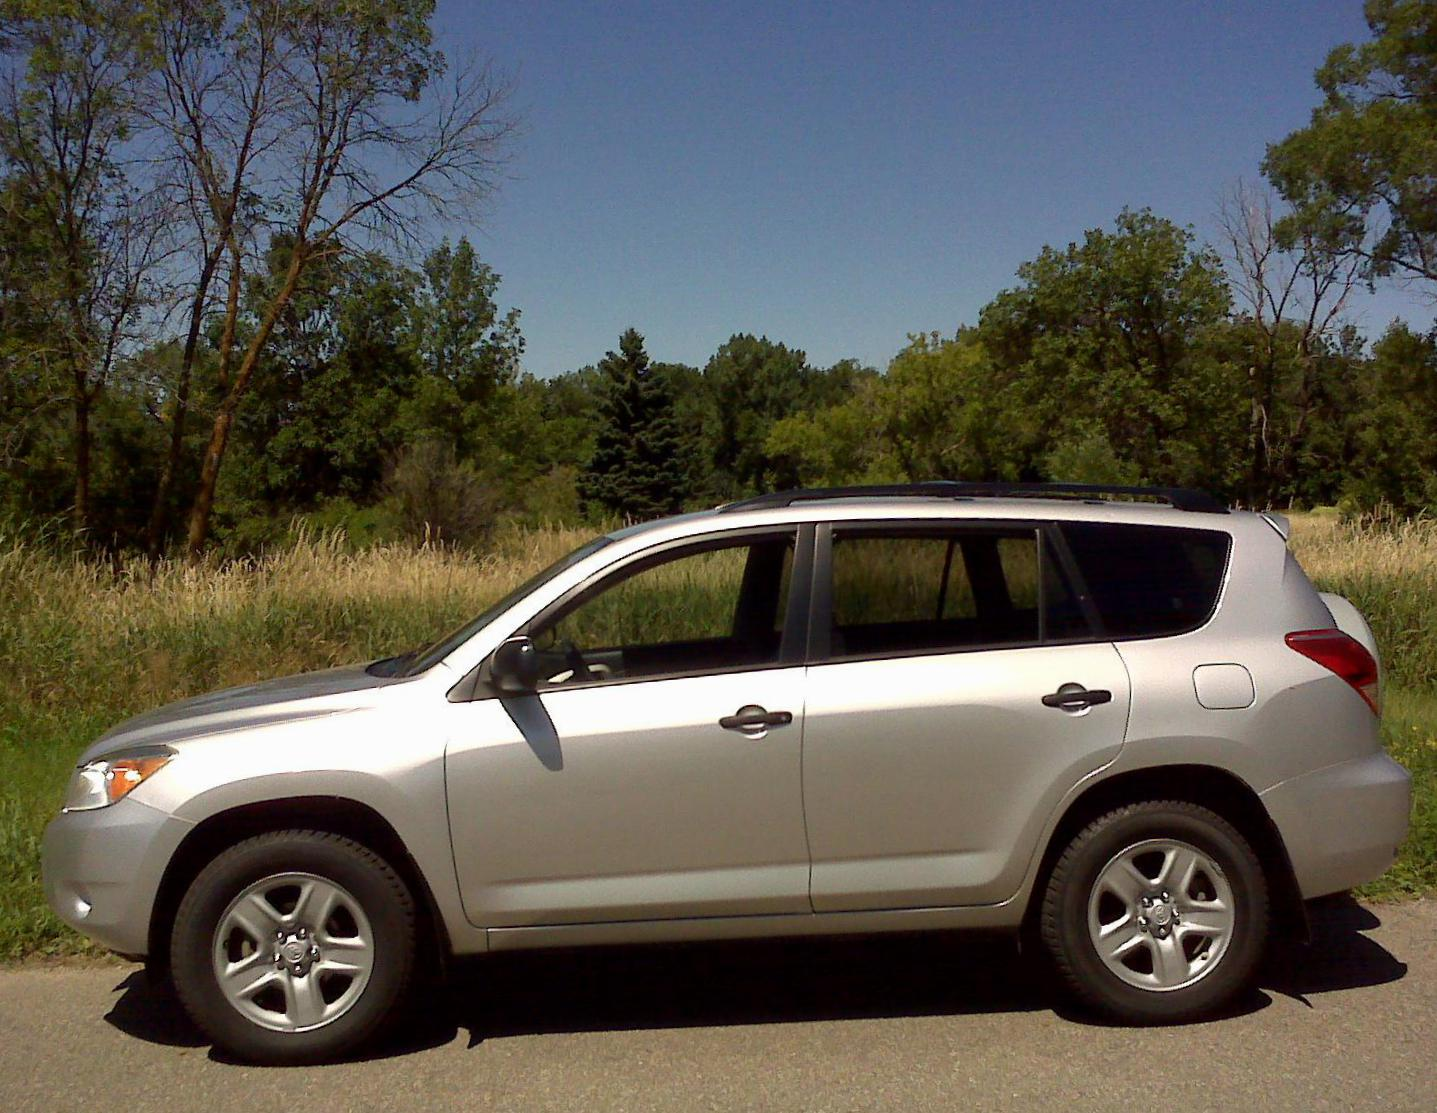 Toyota RAV4 for sale cabriolet